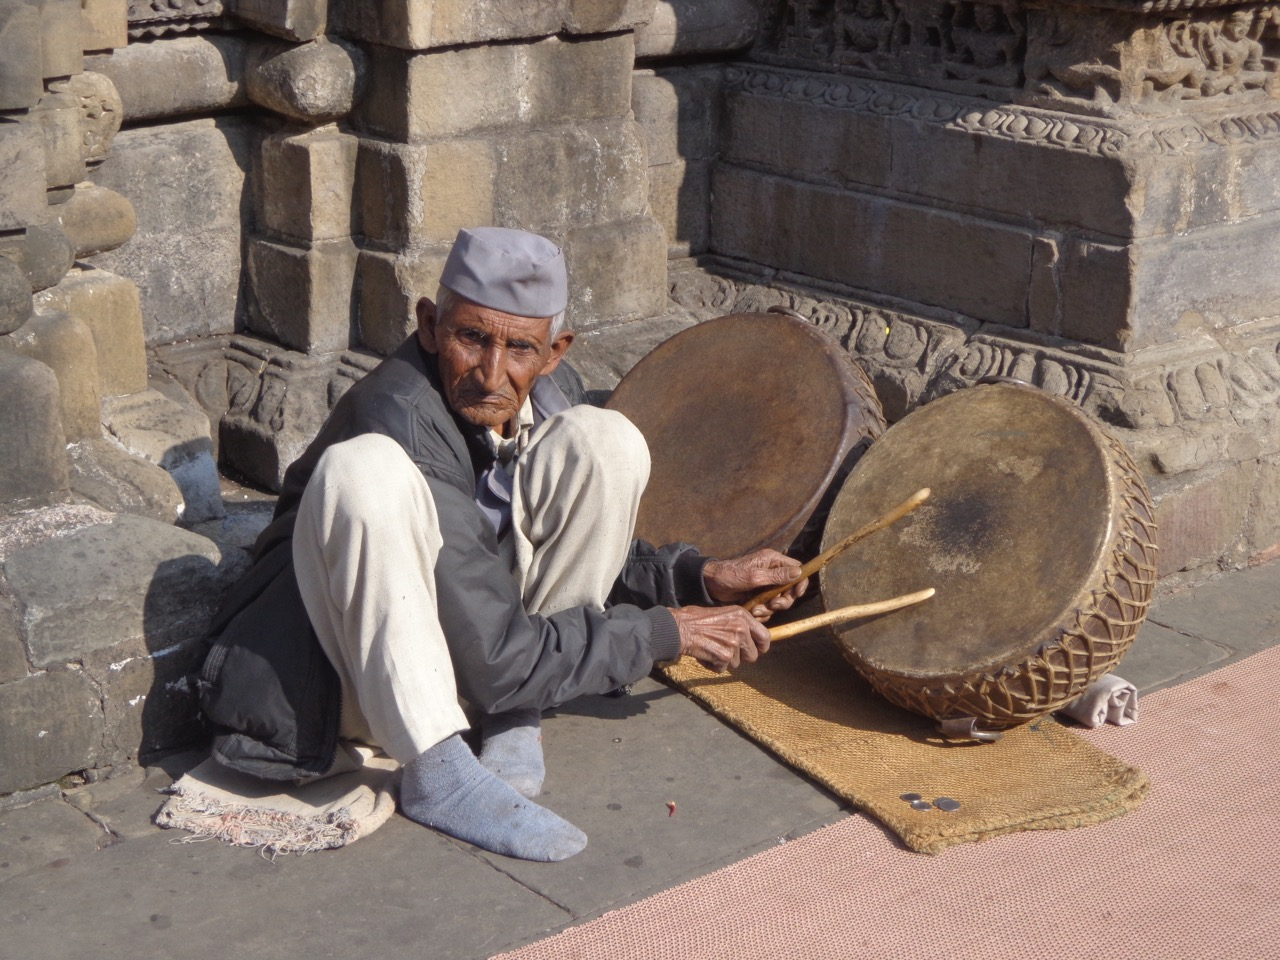 A drummer drums and begs inside the temple.